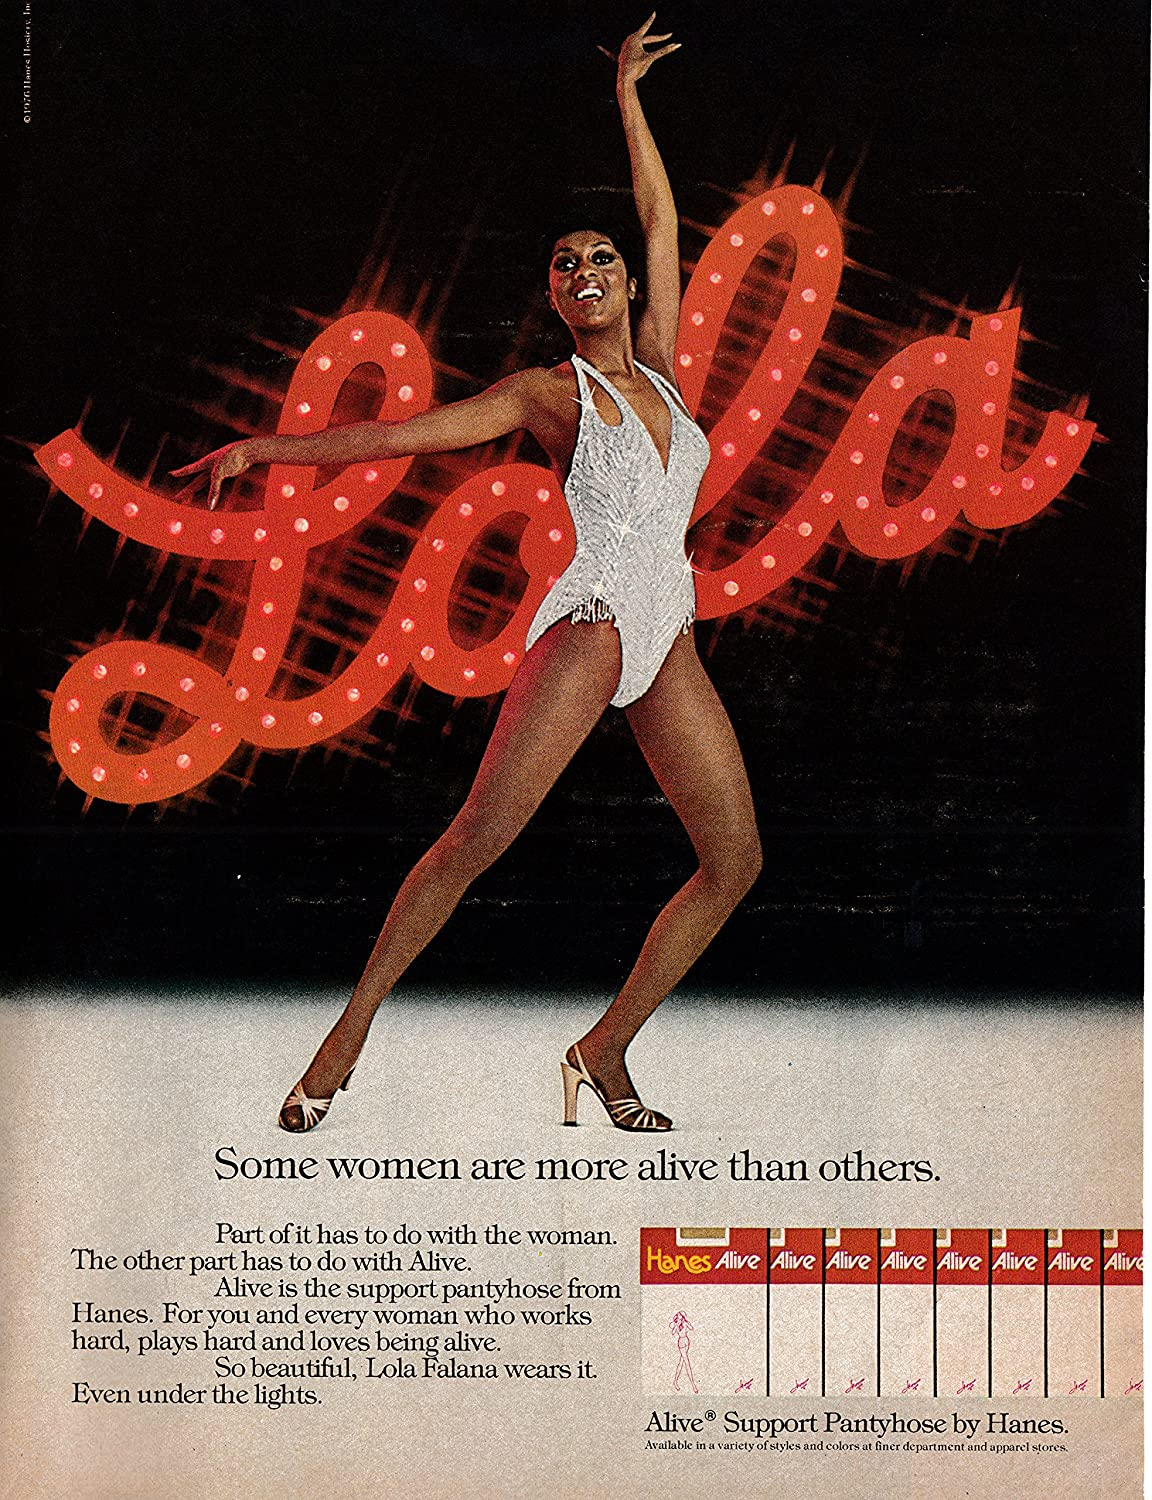 Amazon.com : 1977 Lola Falana-Singer Dancer Actress-Hanes Pantyhose-Original  13 * 10 Magazine Ad : Everything Else